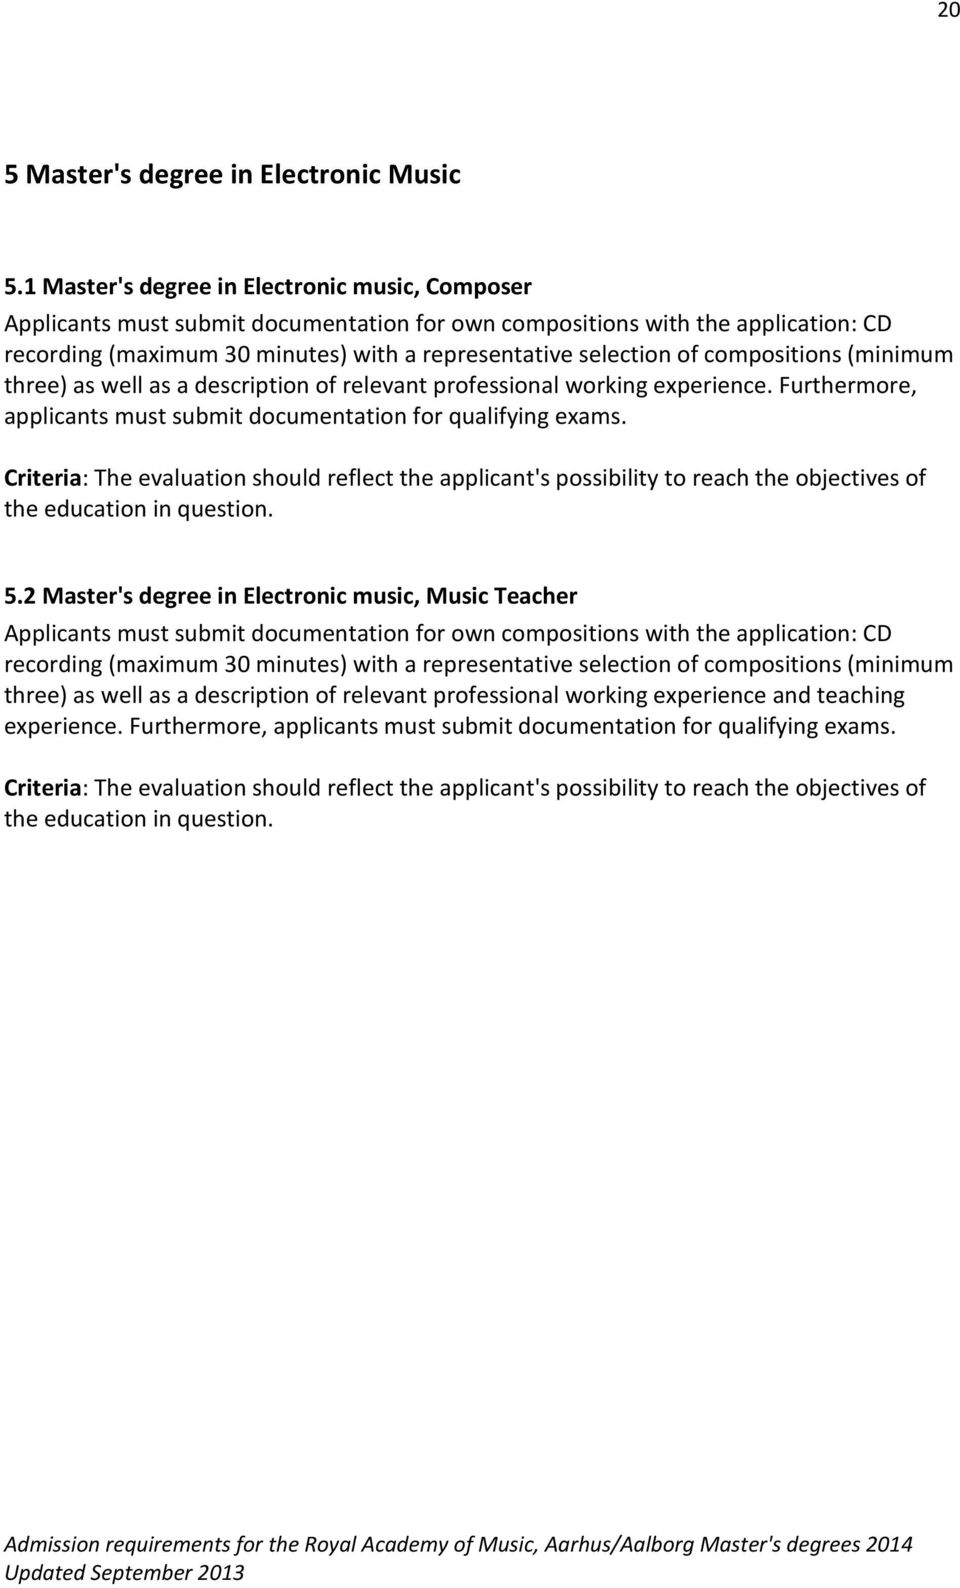 compositions (minimum three) as well as a description of relevant professional working experience. Furthermore, applicants must submit documentation for qualifying exams.